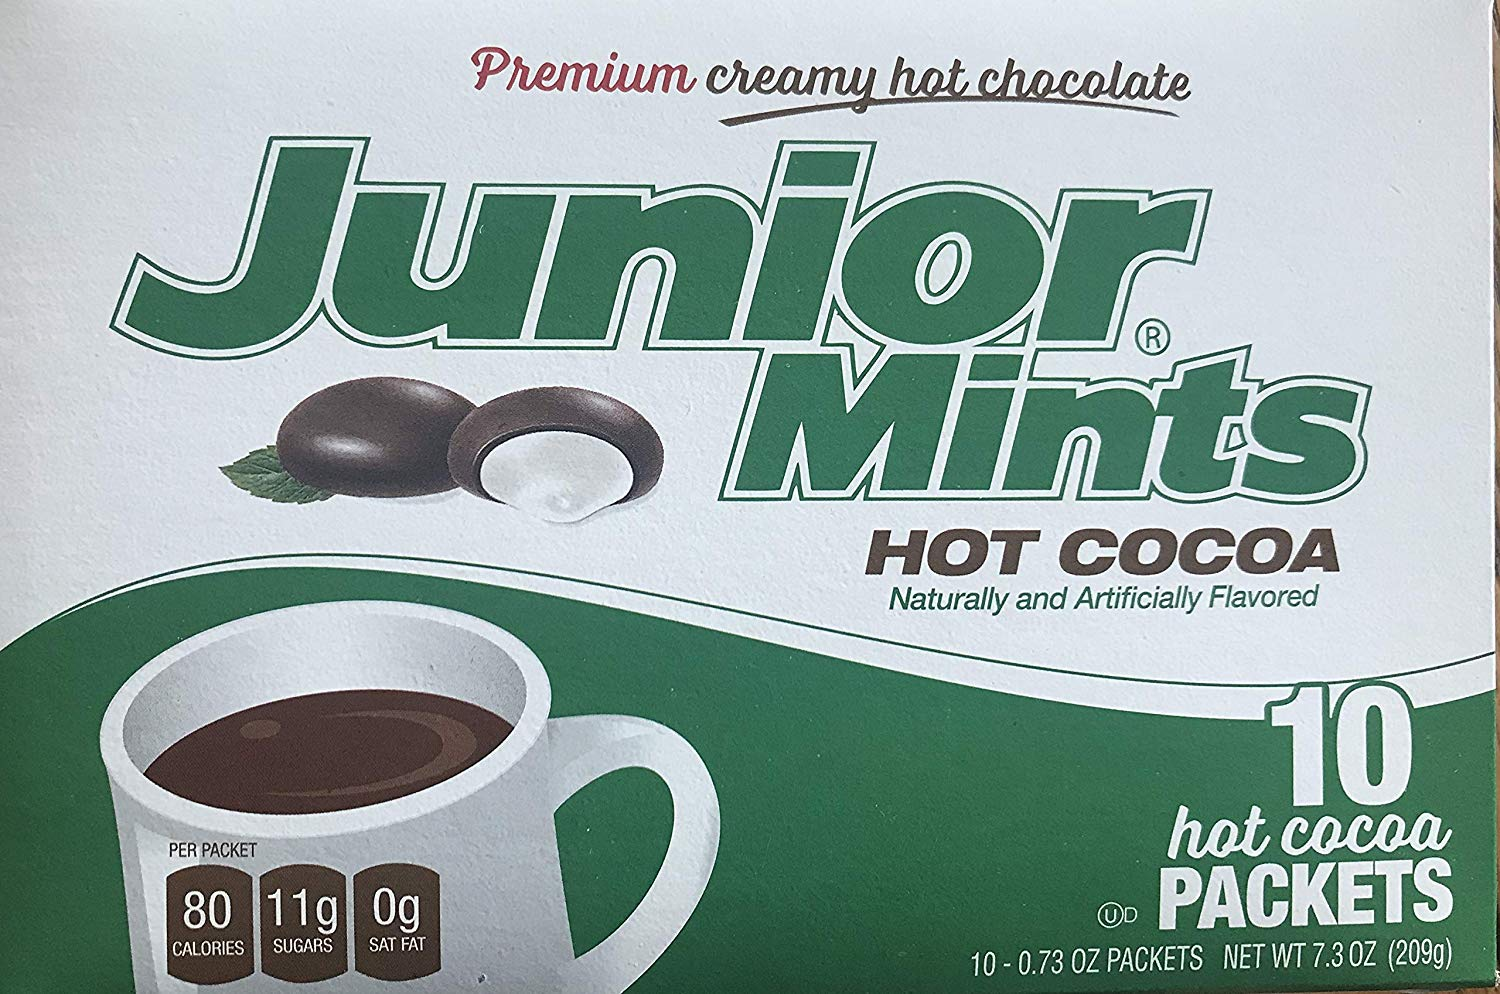 COCOA HOT TOOTSIE ROLL: Hot Cocoa Junior Mints Pack, 10 pc